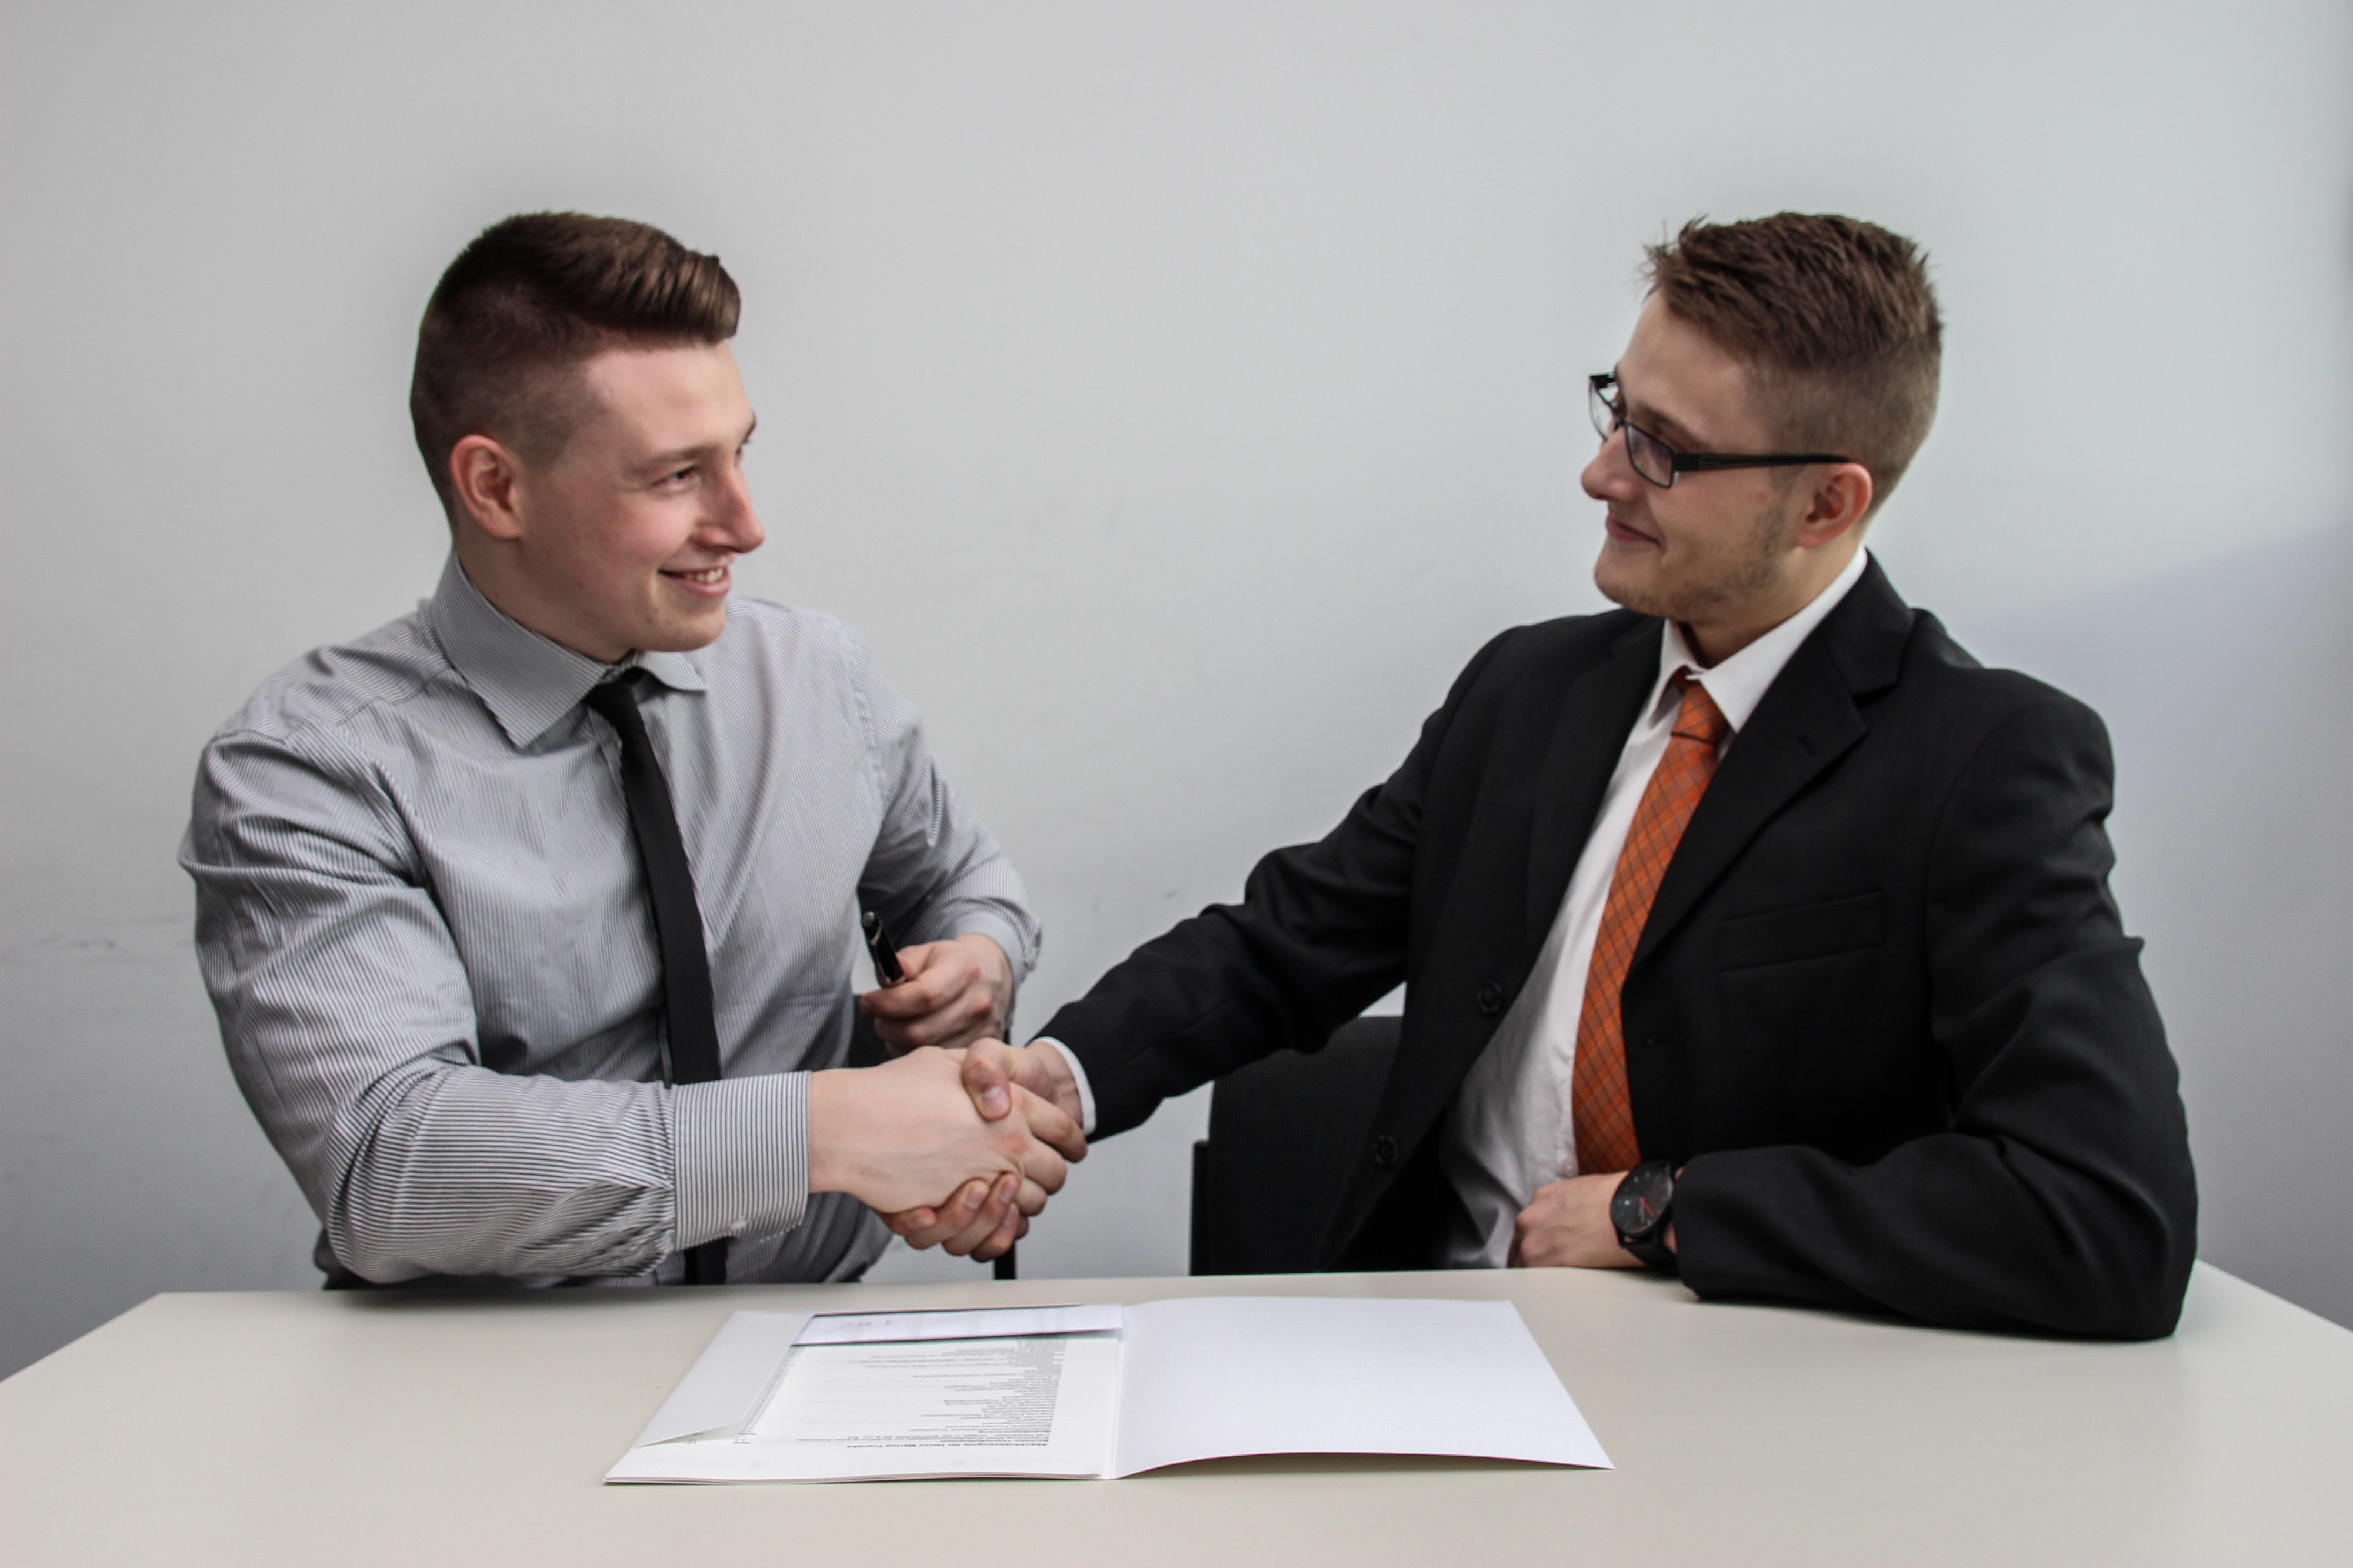 Signing a deal with a company dealing with virtual executive assistants